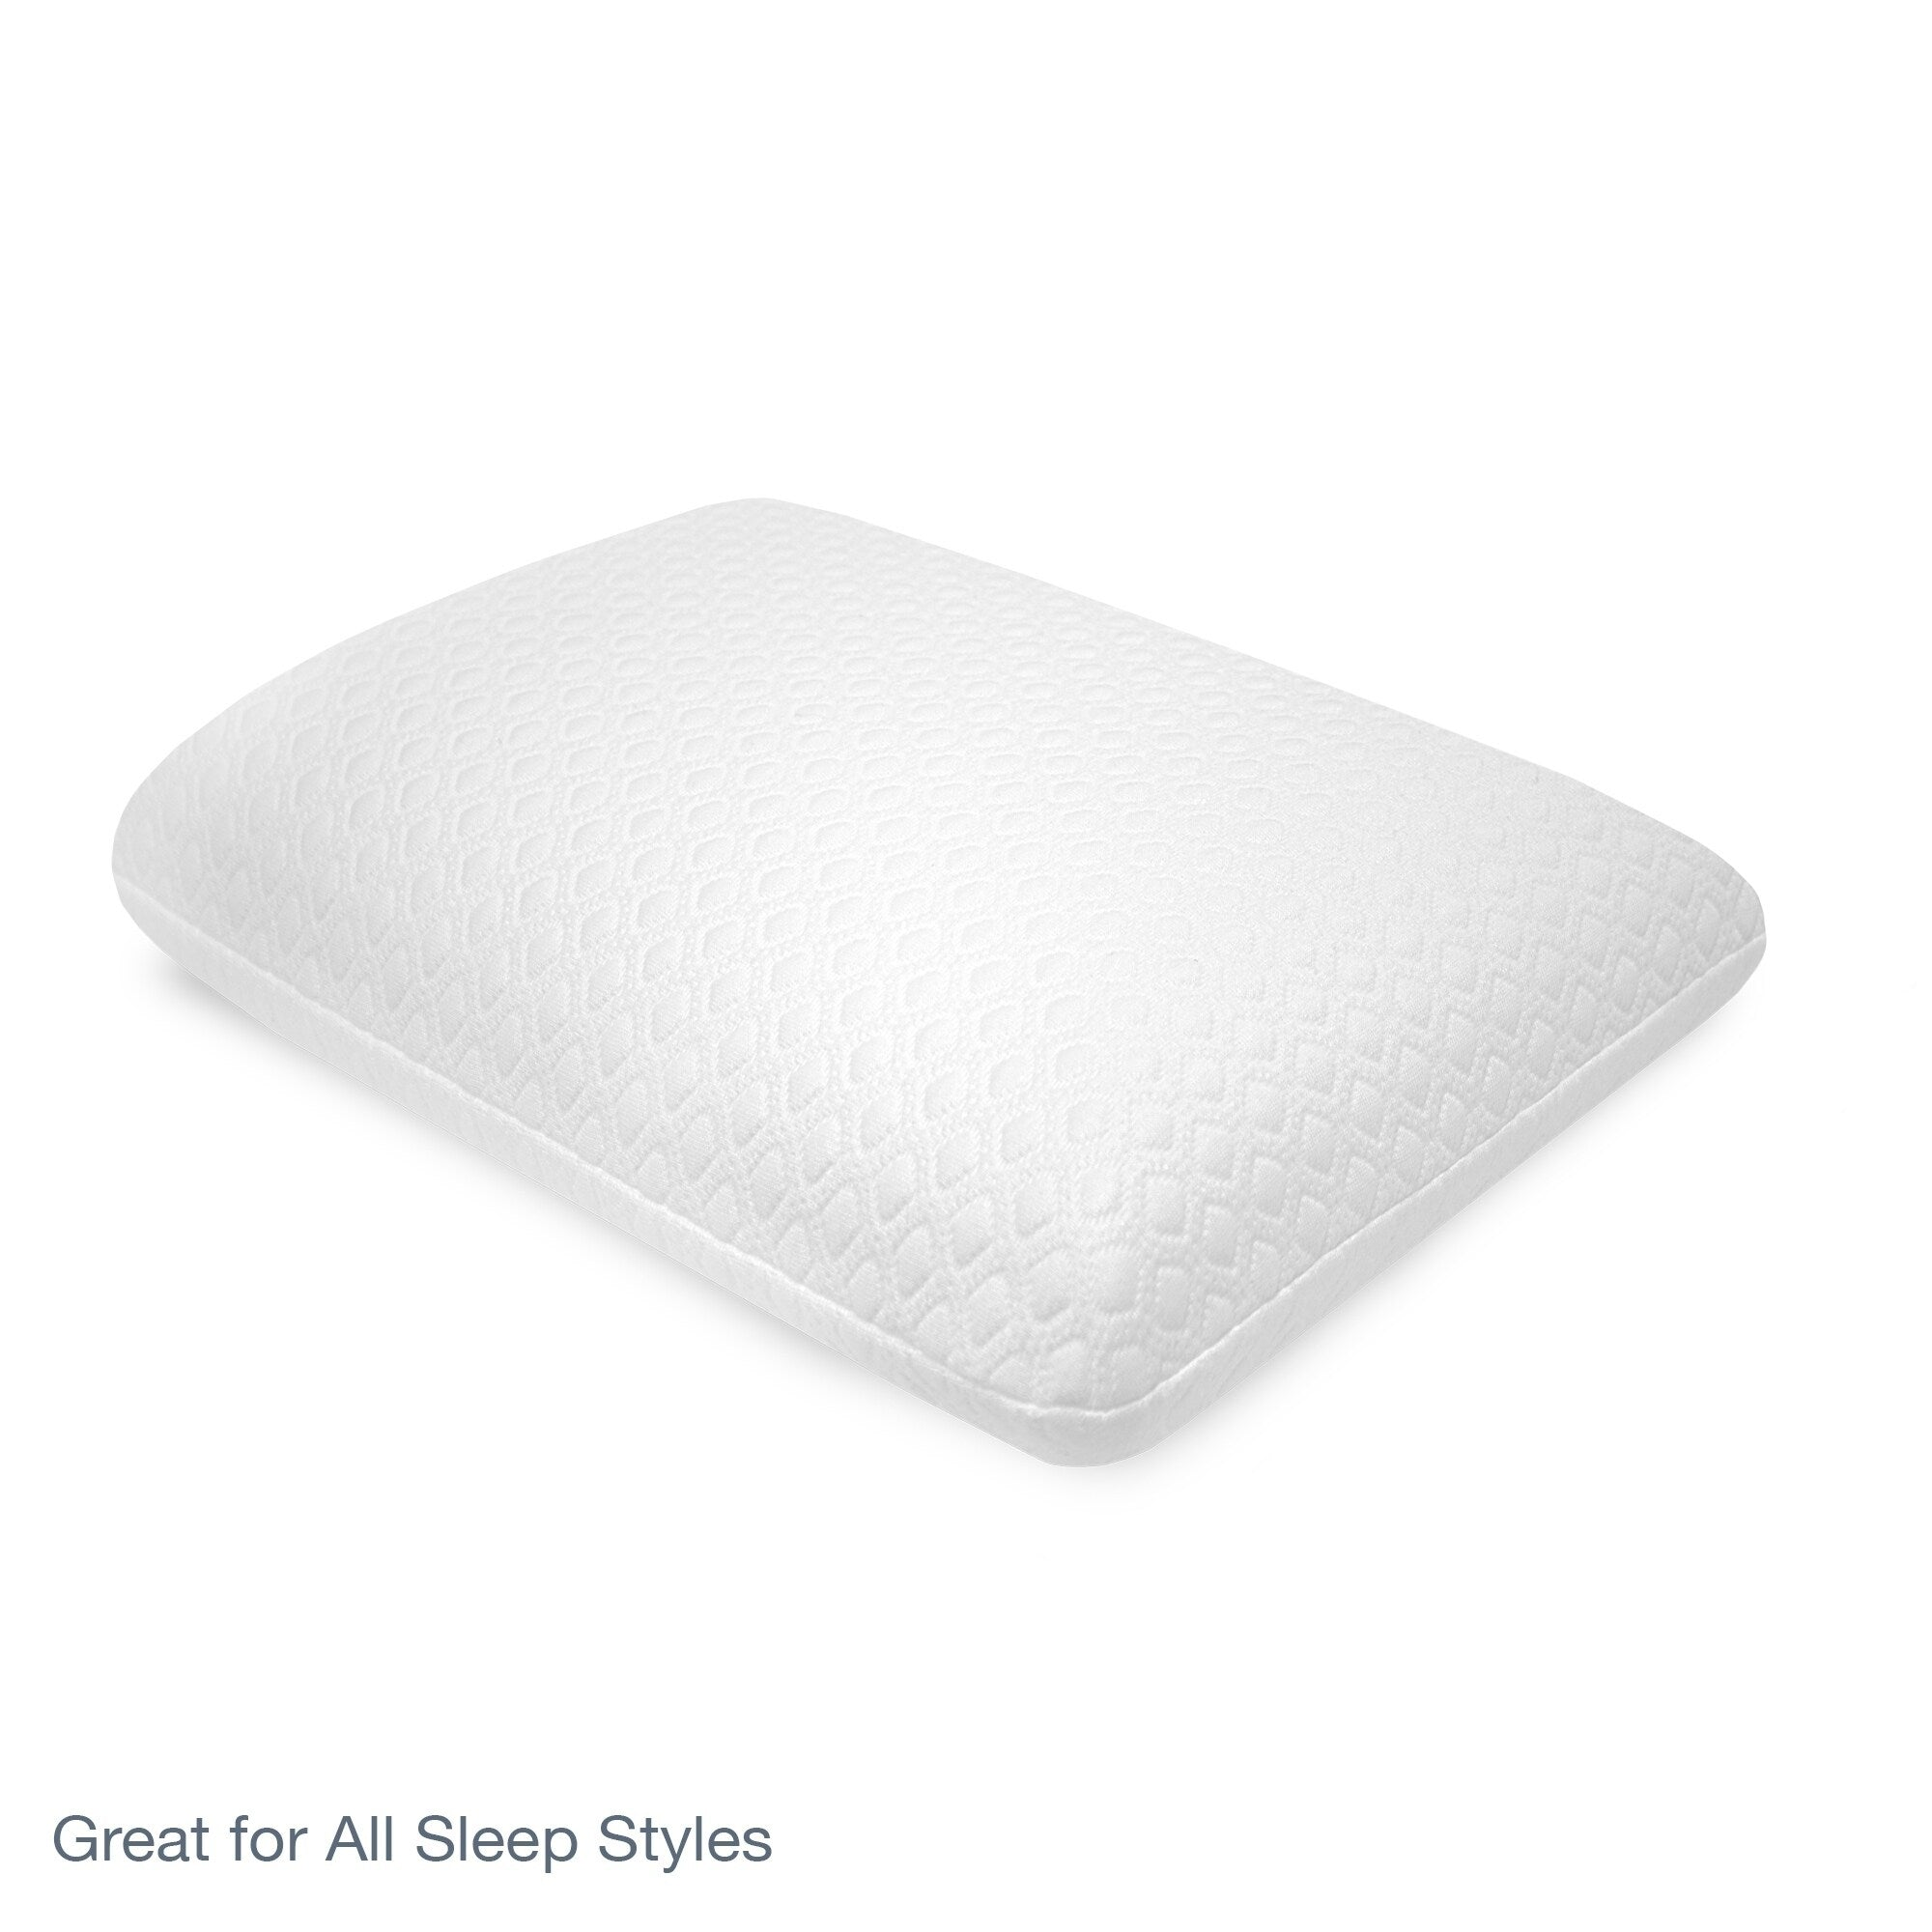 SensorPEDIC Luxury Cooling Gel Overlay Memory Foam Pillow